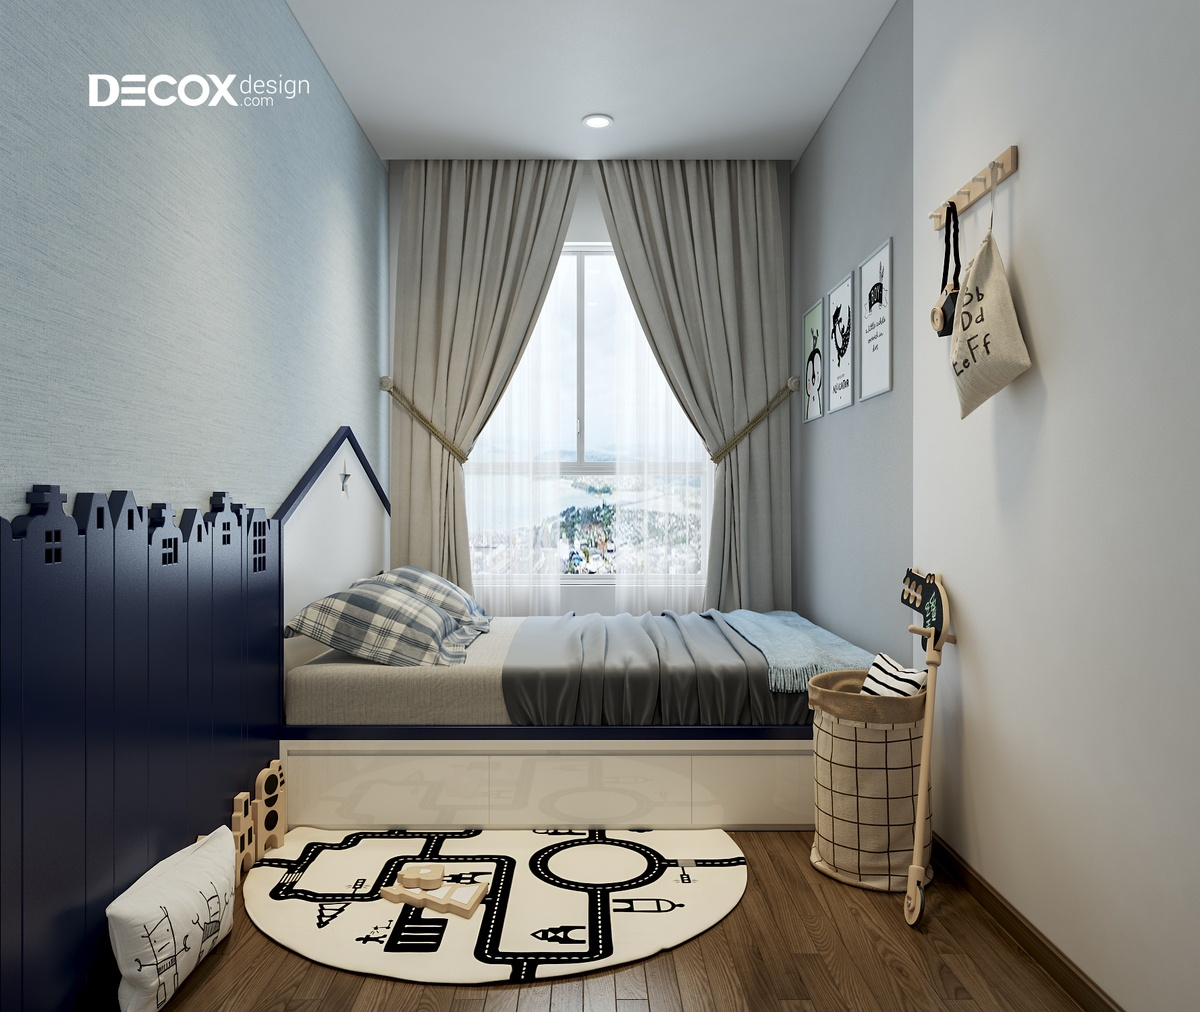 thiet-ke-noi-that-sunrise-cityview-76m2-de180108-phong-ngu-master-16-decox-design